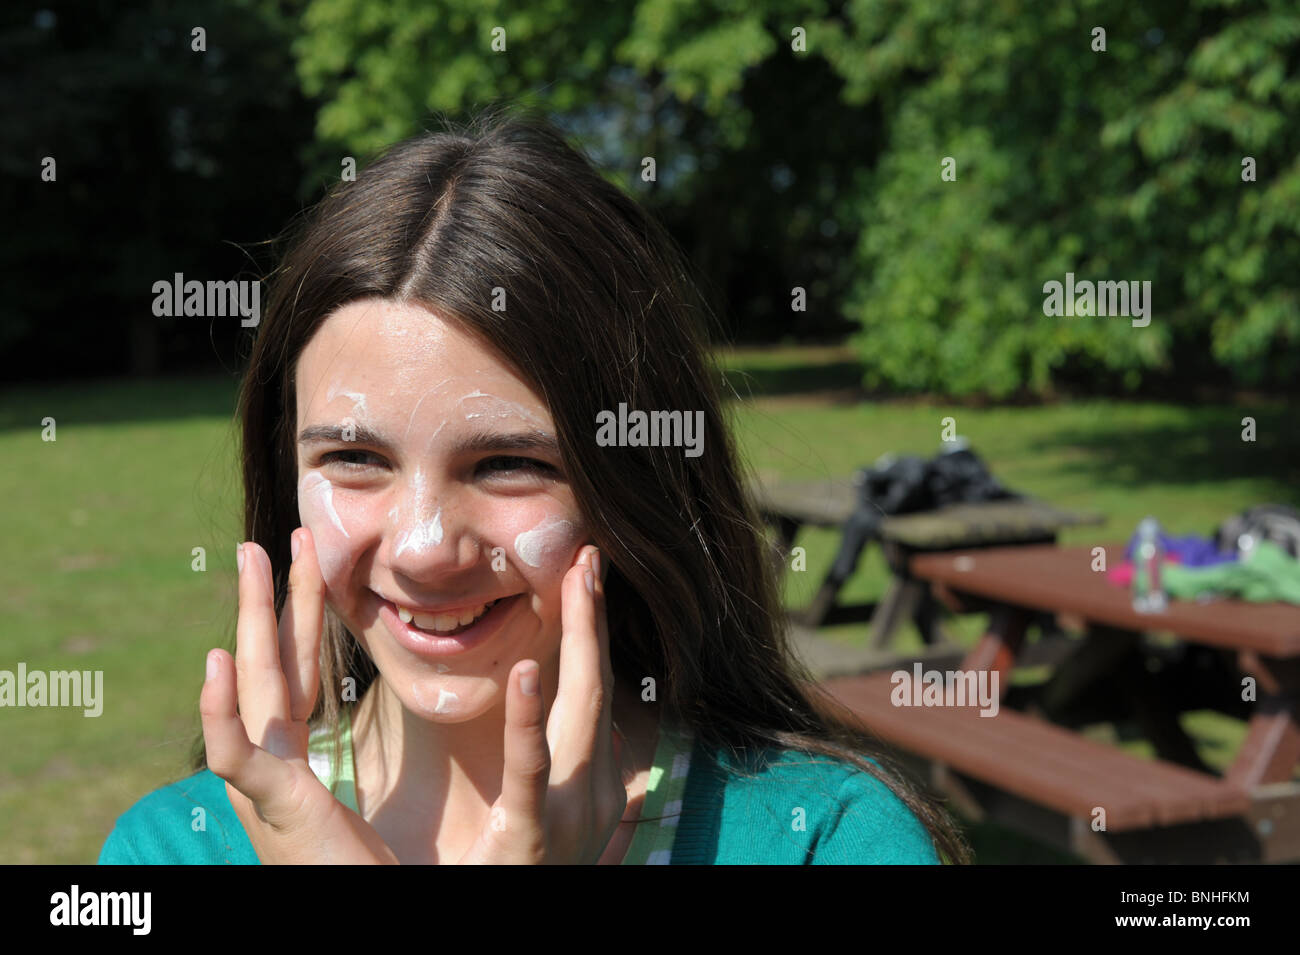 Girl happily applying suncream to protect her face from sunburn in a park on a hot sunny day - Stock Image